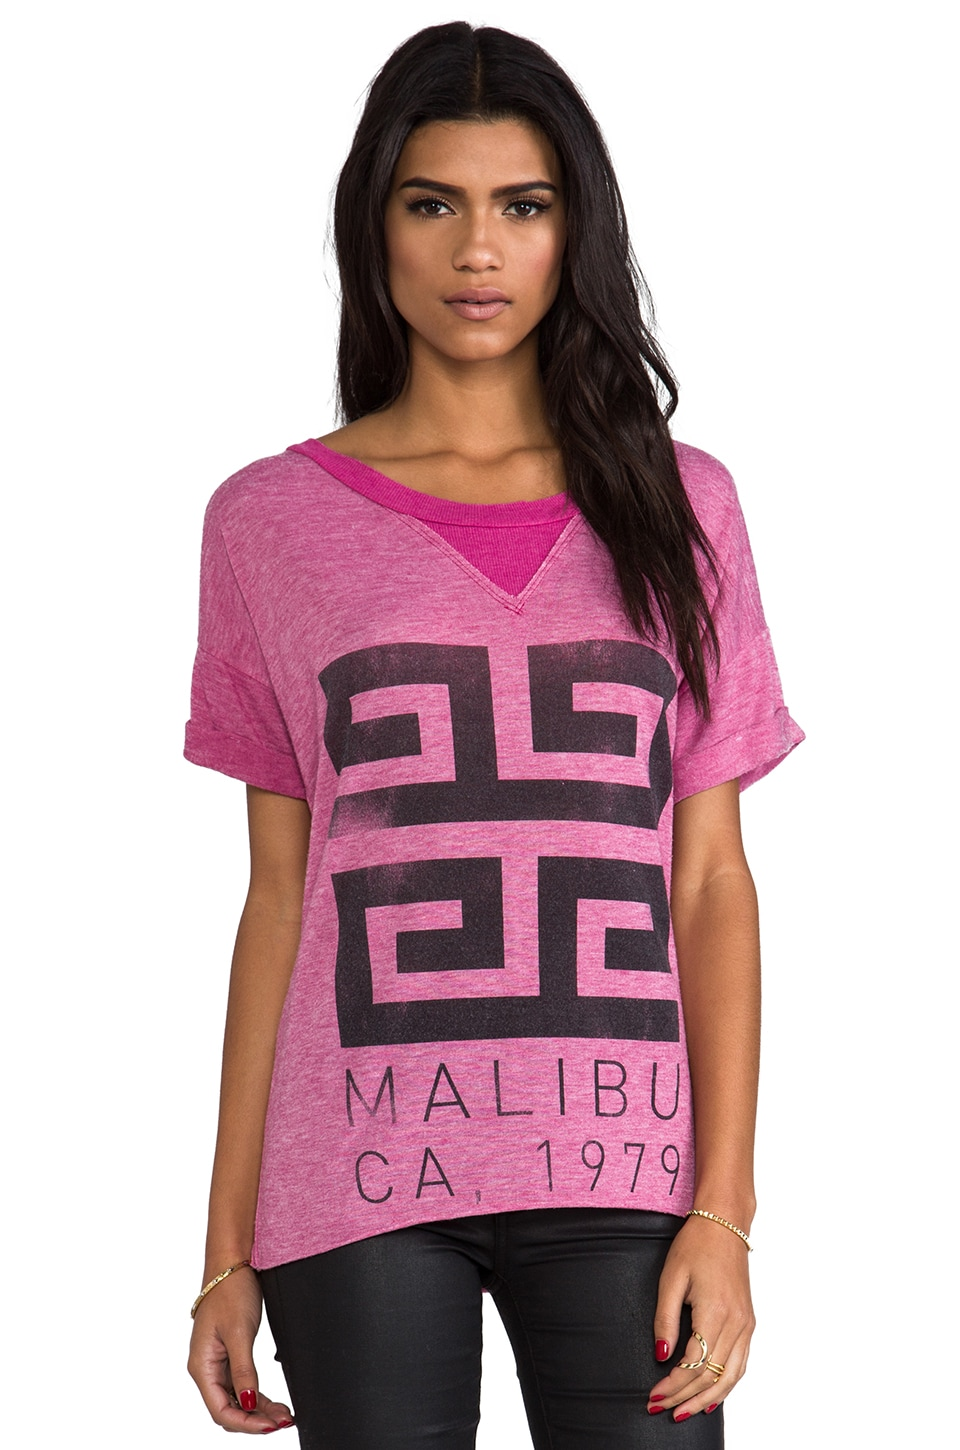 Rebel Yell Malibu X Boyfriend Tee in Bubblegum